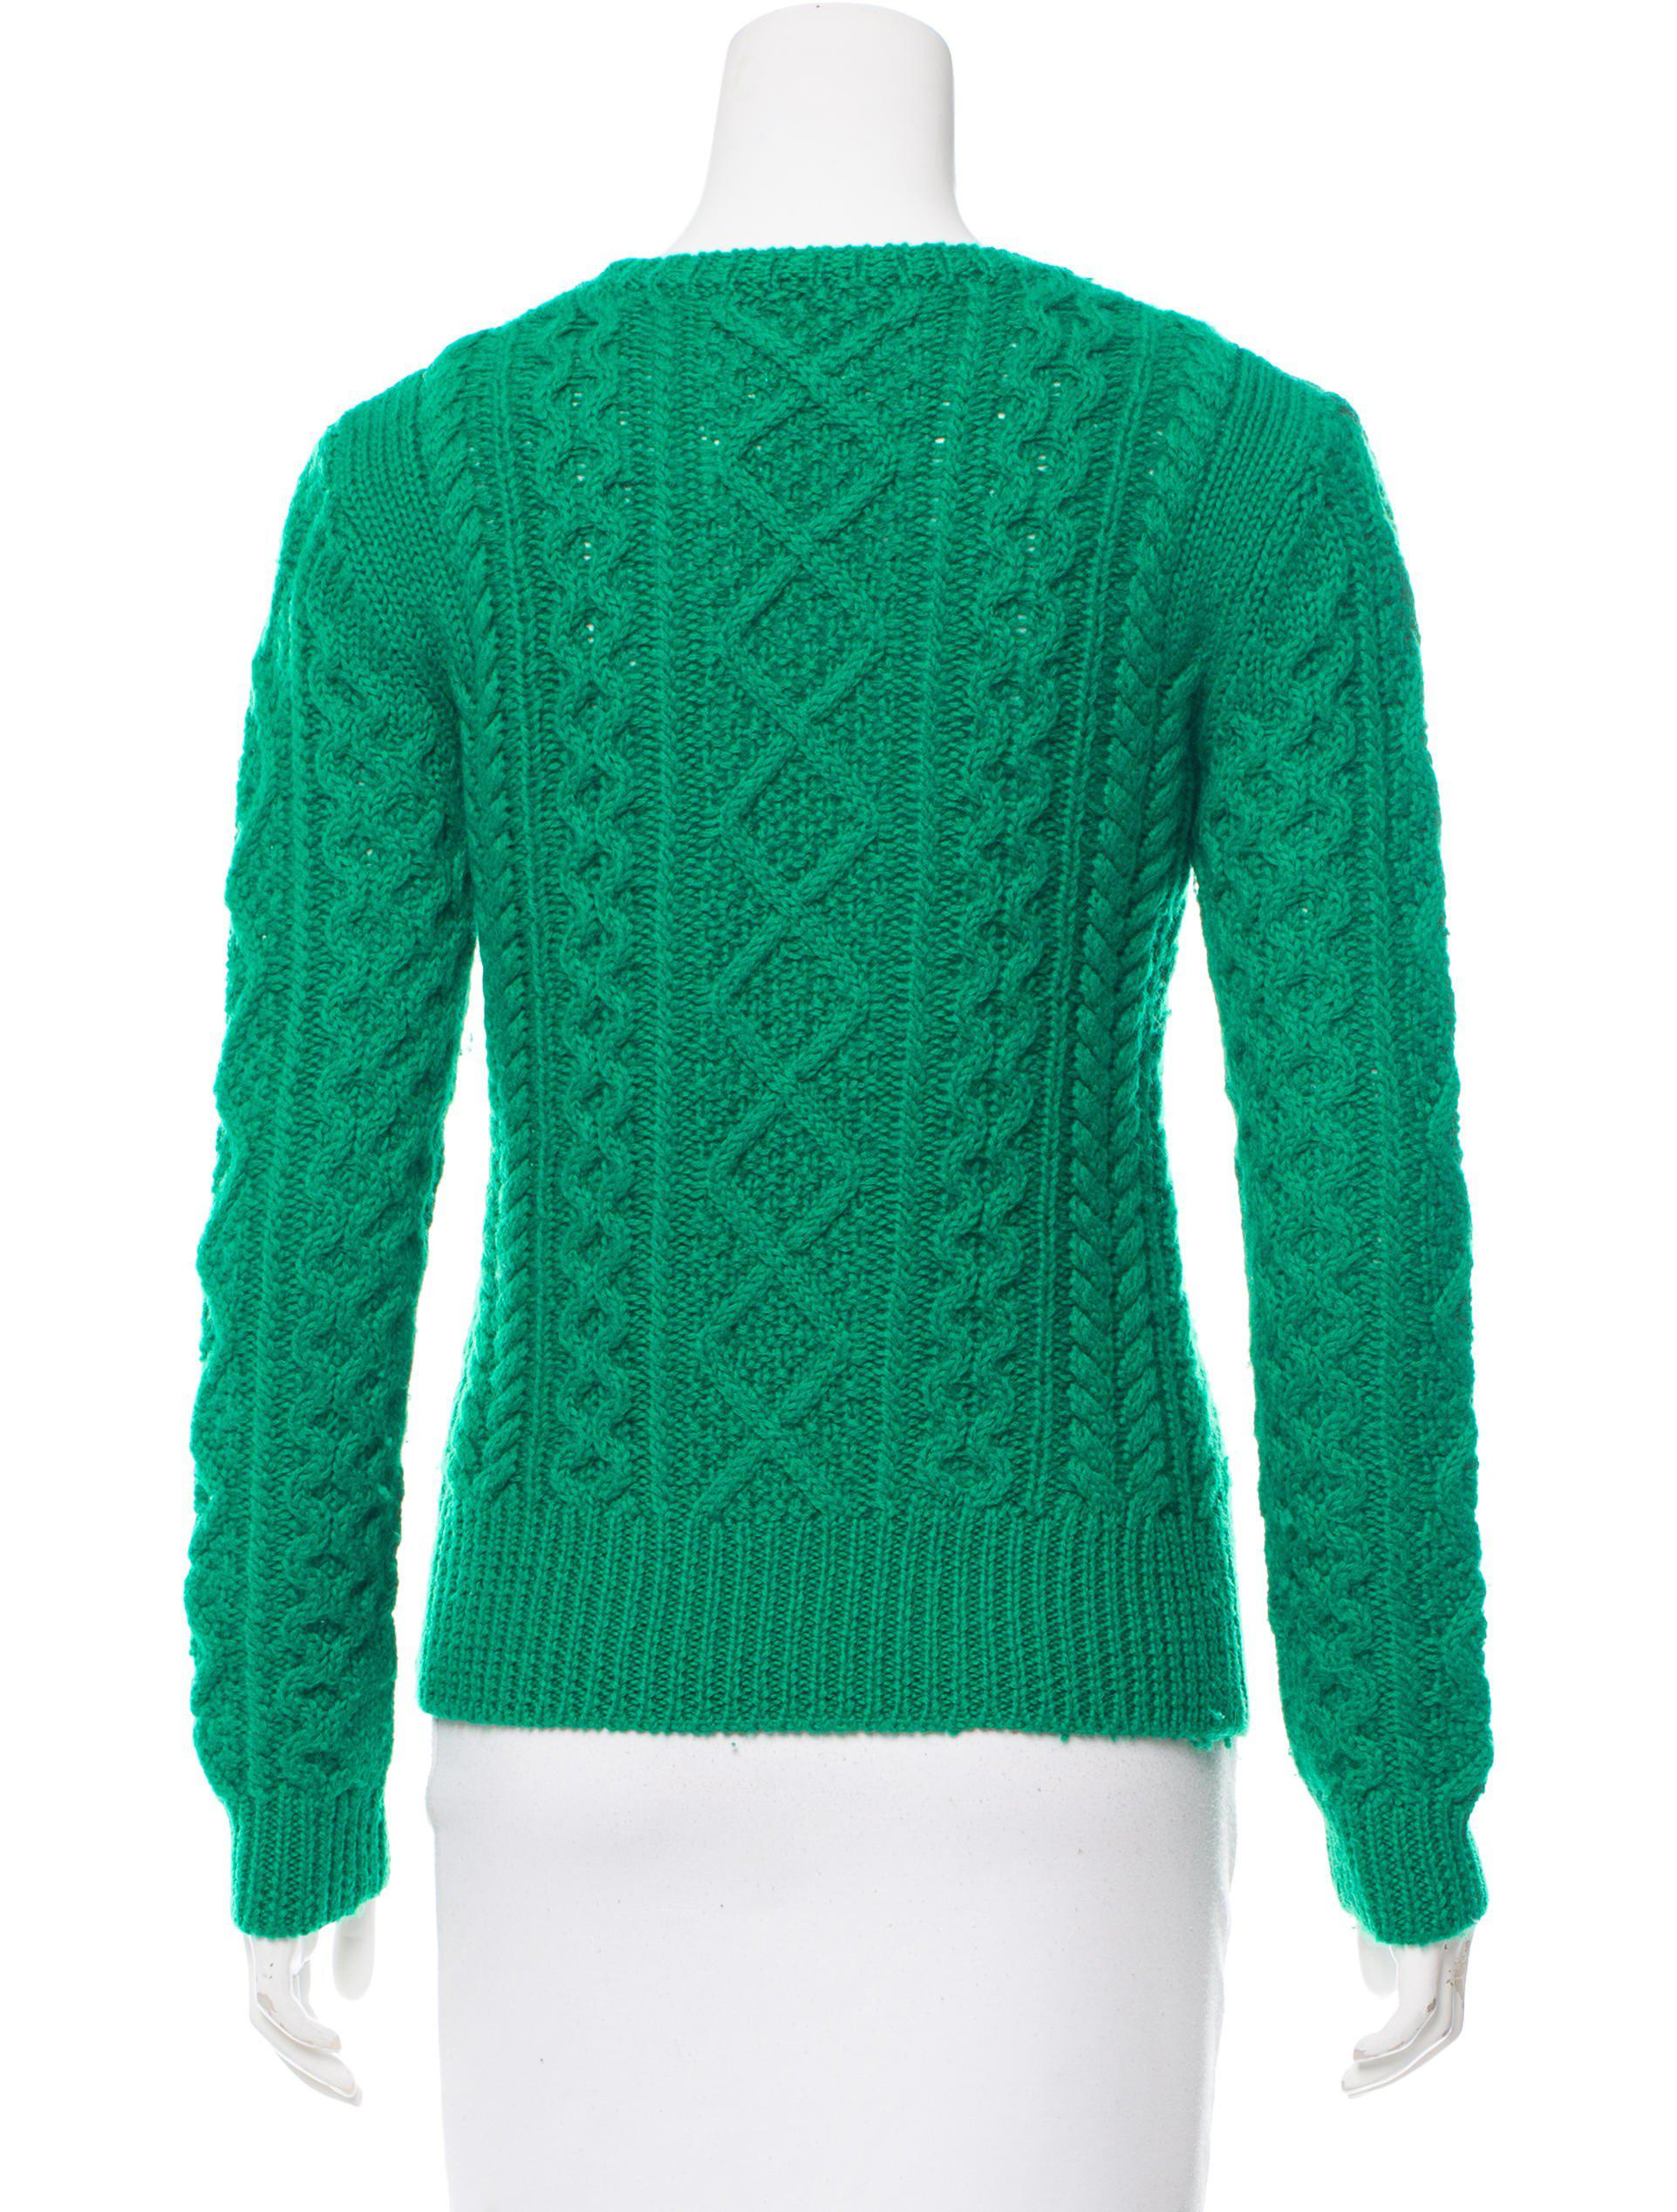 Étoile isabel marant Wool Cable-knit Sweater in Green | Lyst